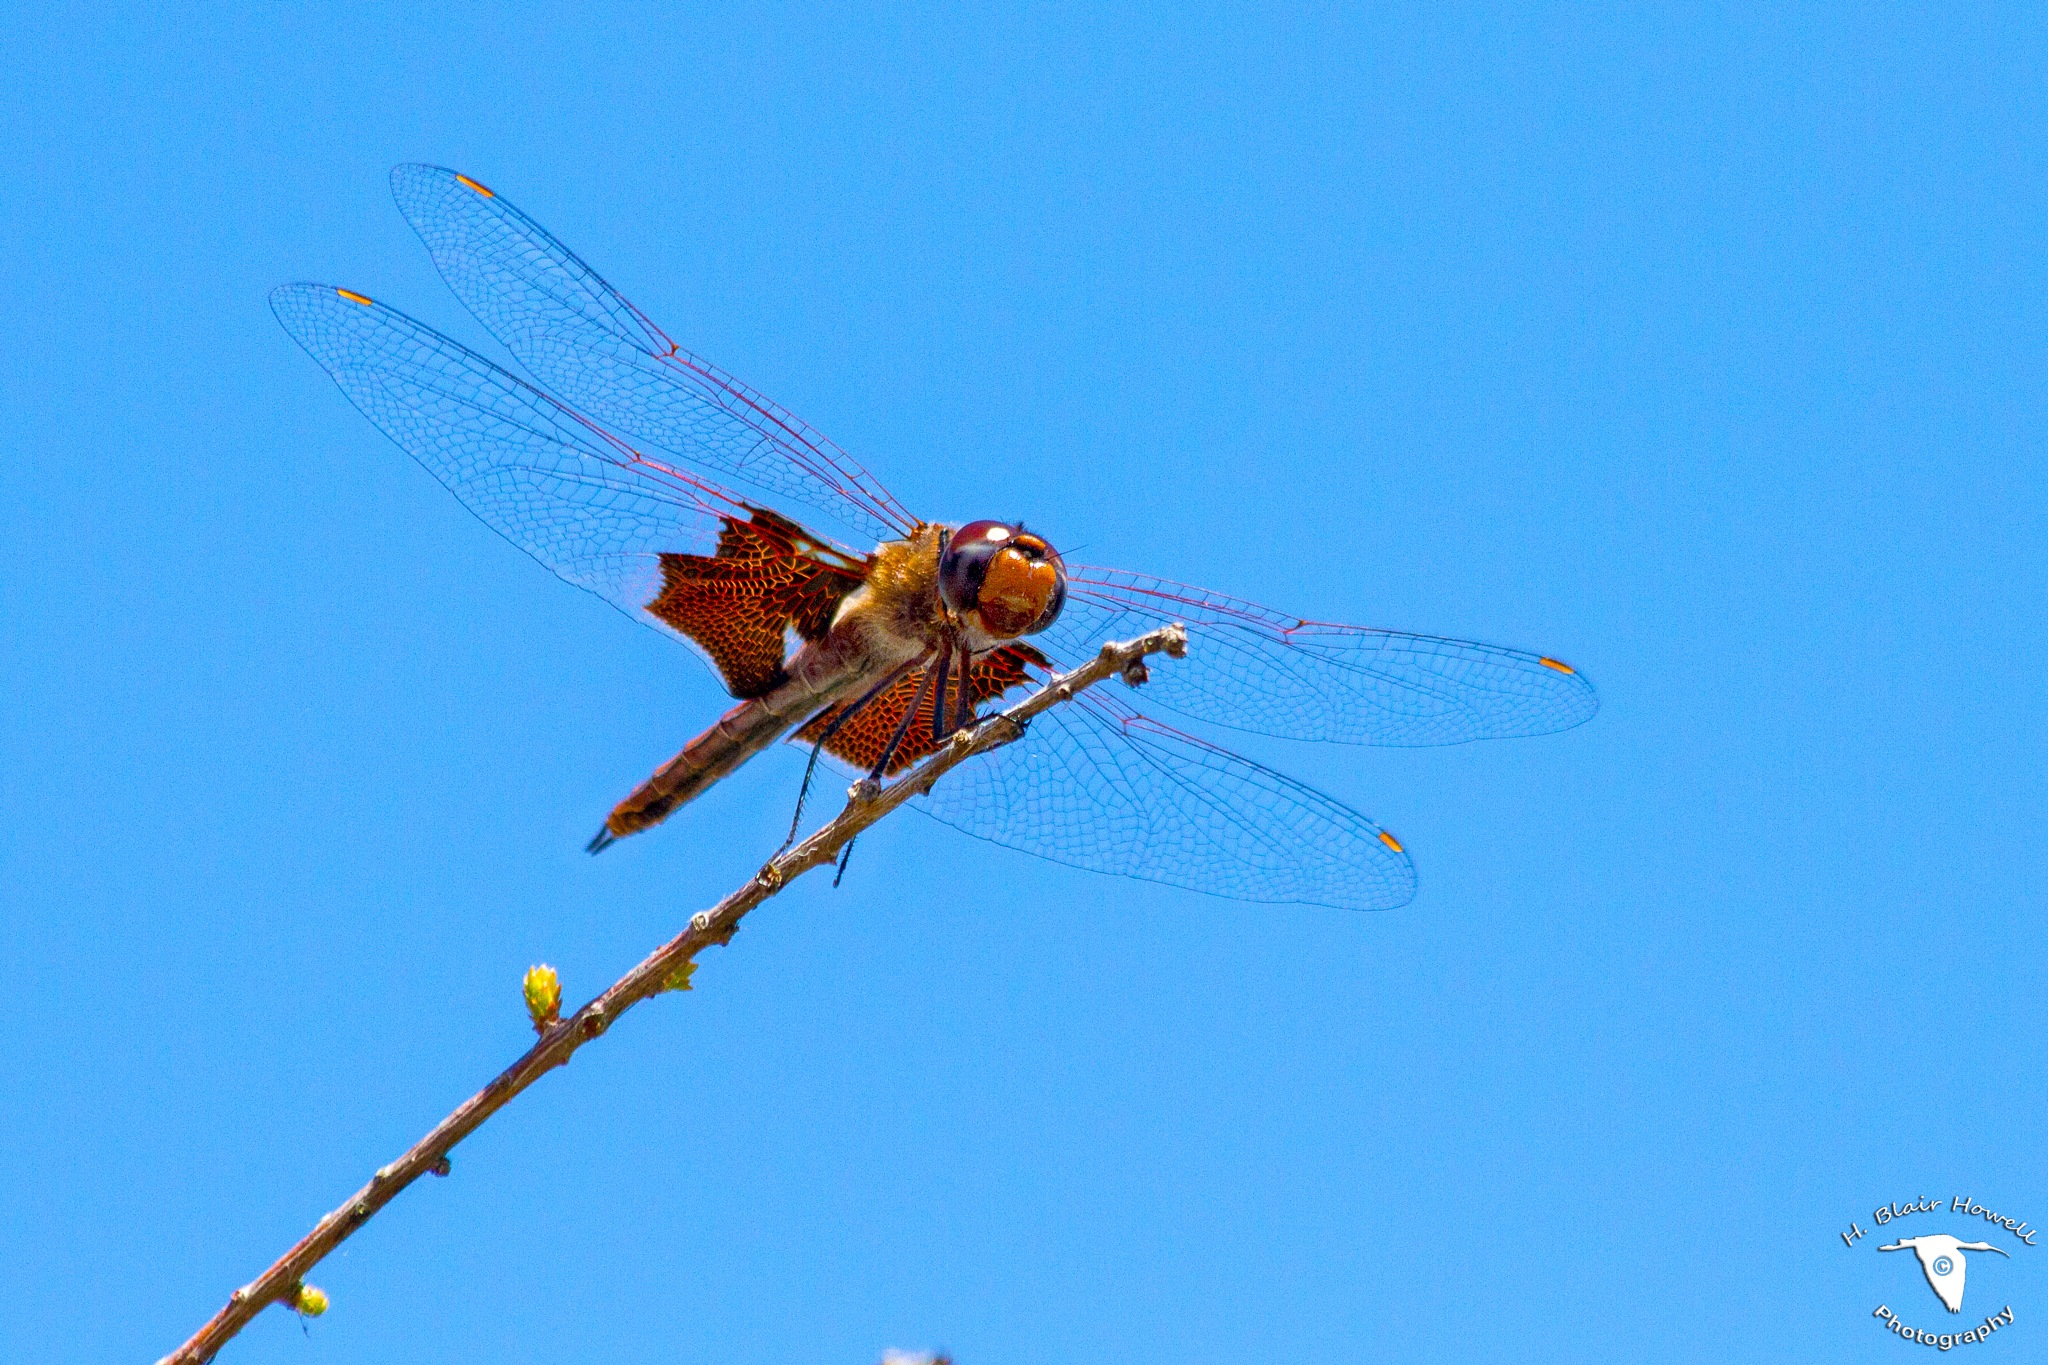 Dragonfly by HBlairHowell